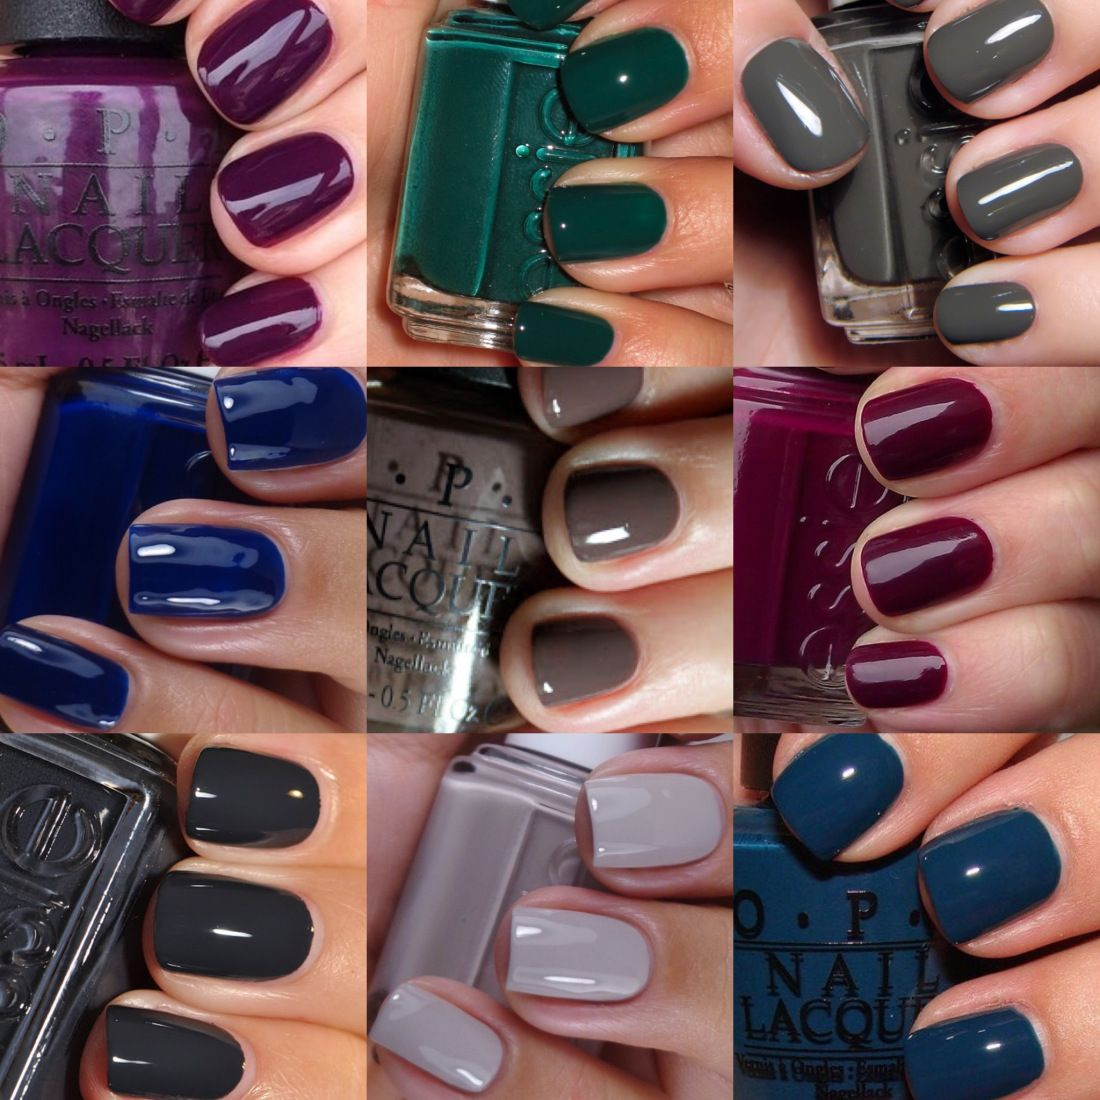 6 New Colors To Try For Your Summer Nails | Nail color trends, Fall ...